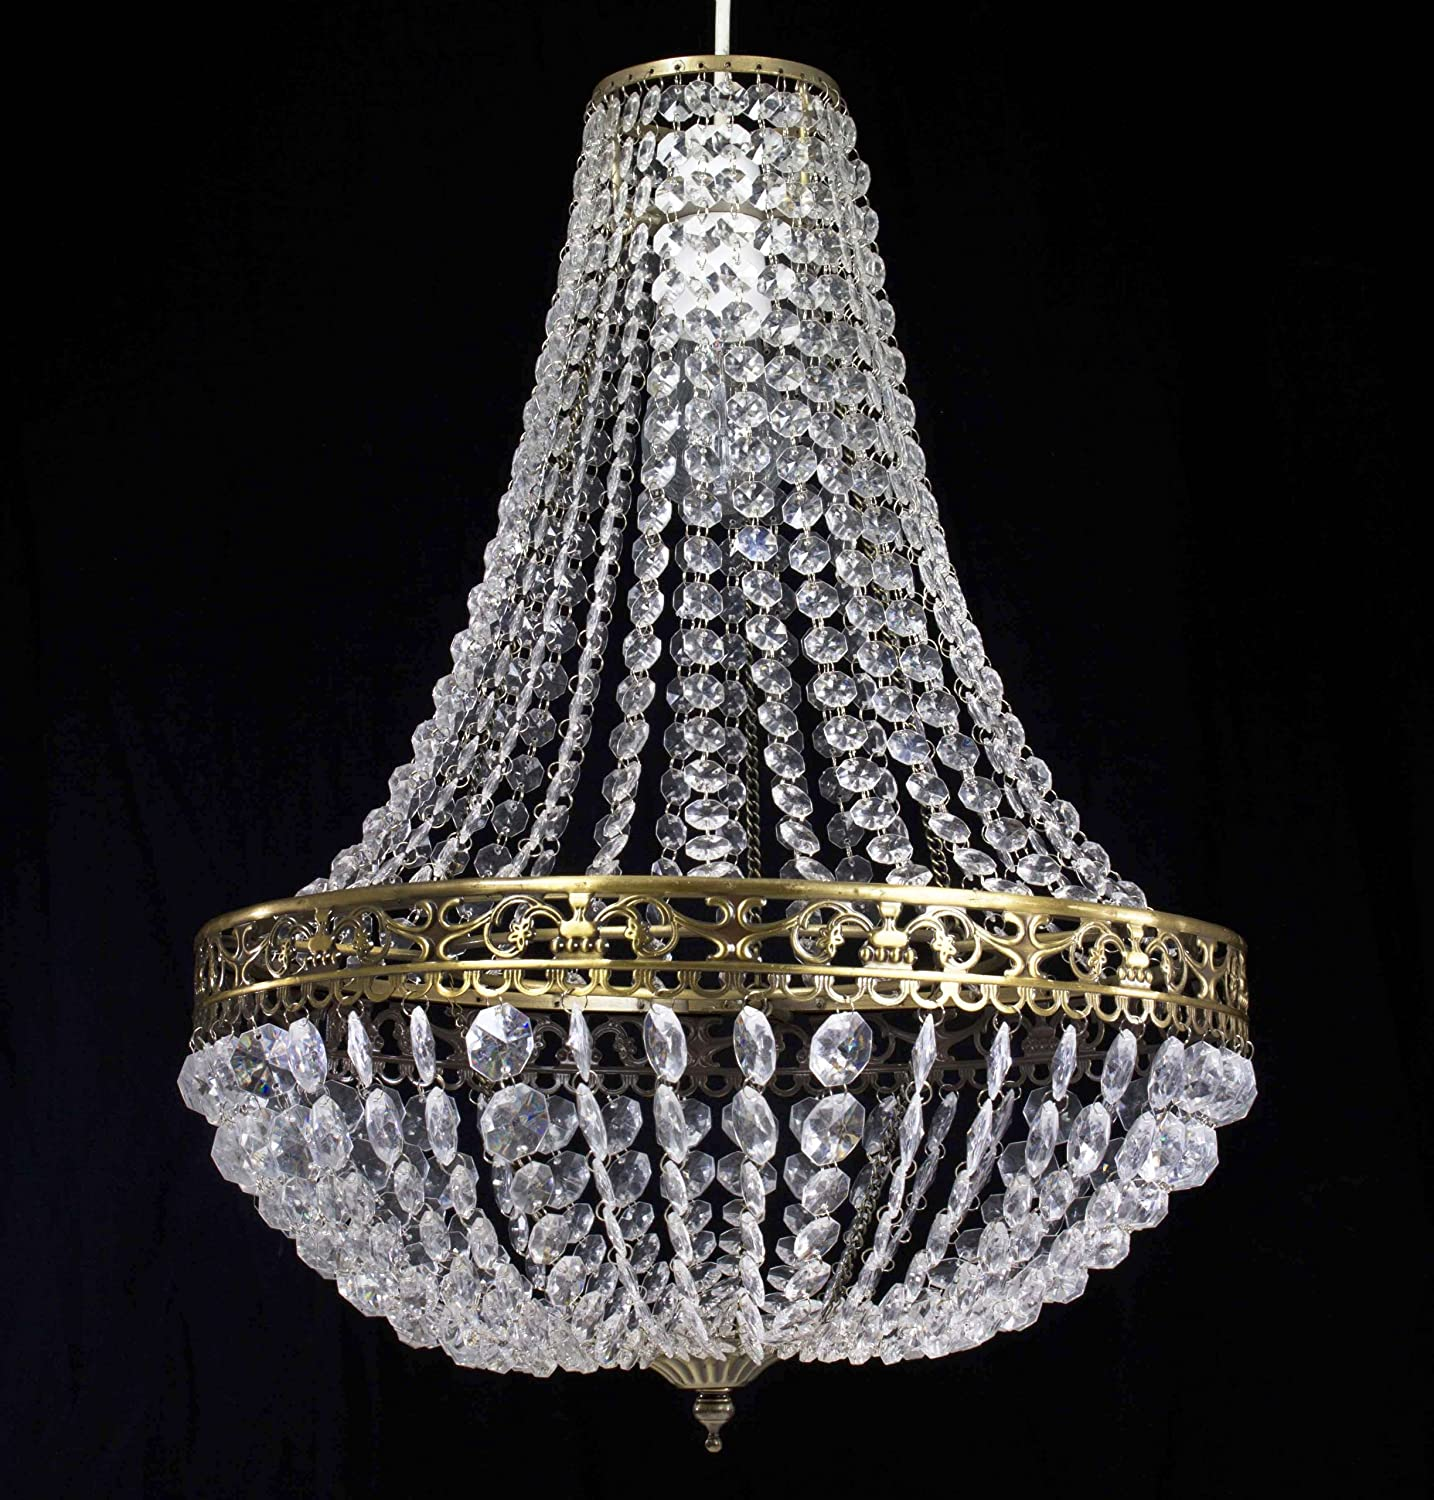 Chandelier Style Clear Acrylic Antique Brass Ceiling Light Shade Easy Fit Pendant & Chandelier Style Clear Acrylic Chrome Ceiling Light Shade Easy Fit ... azcodes.com